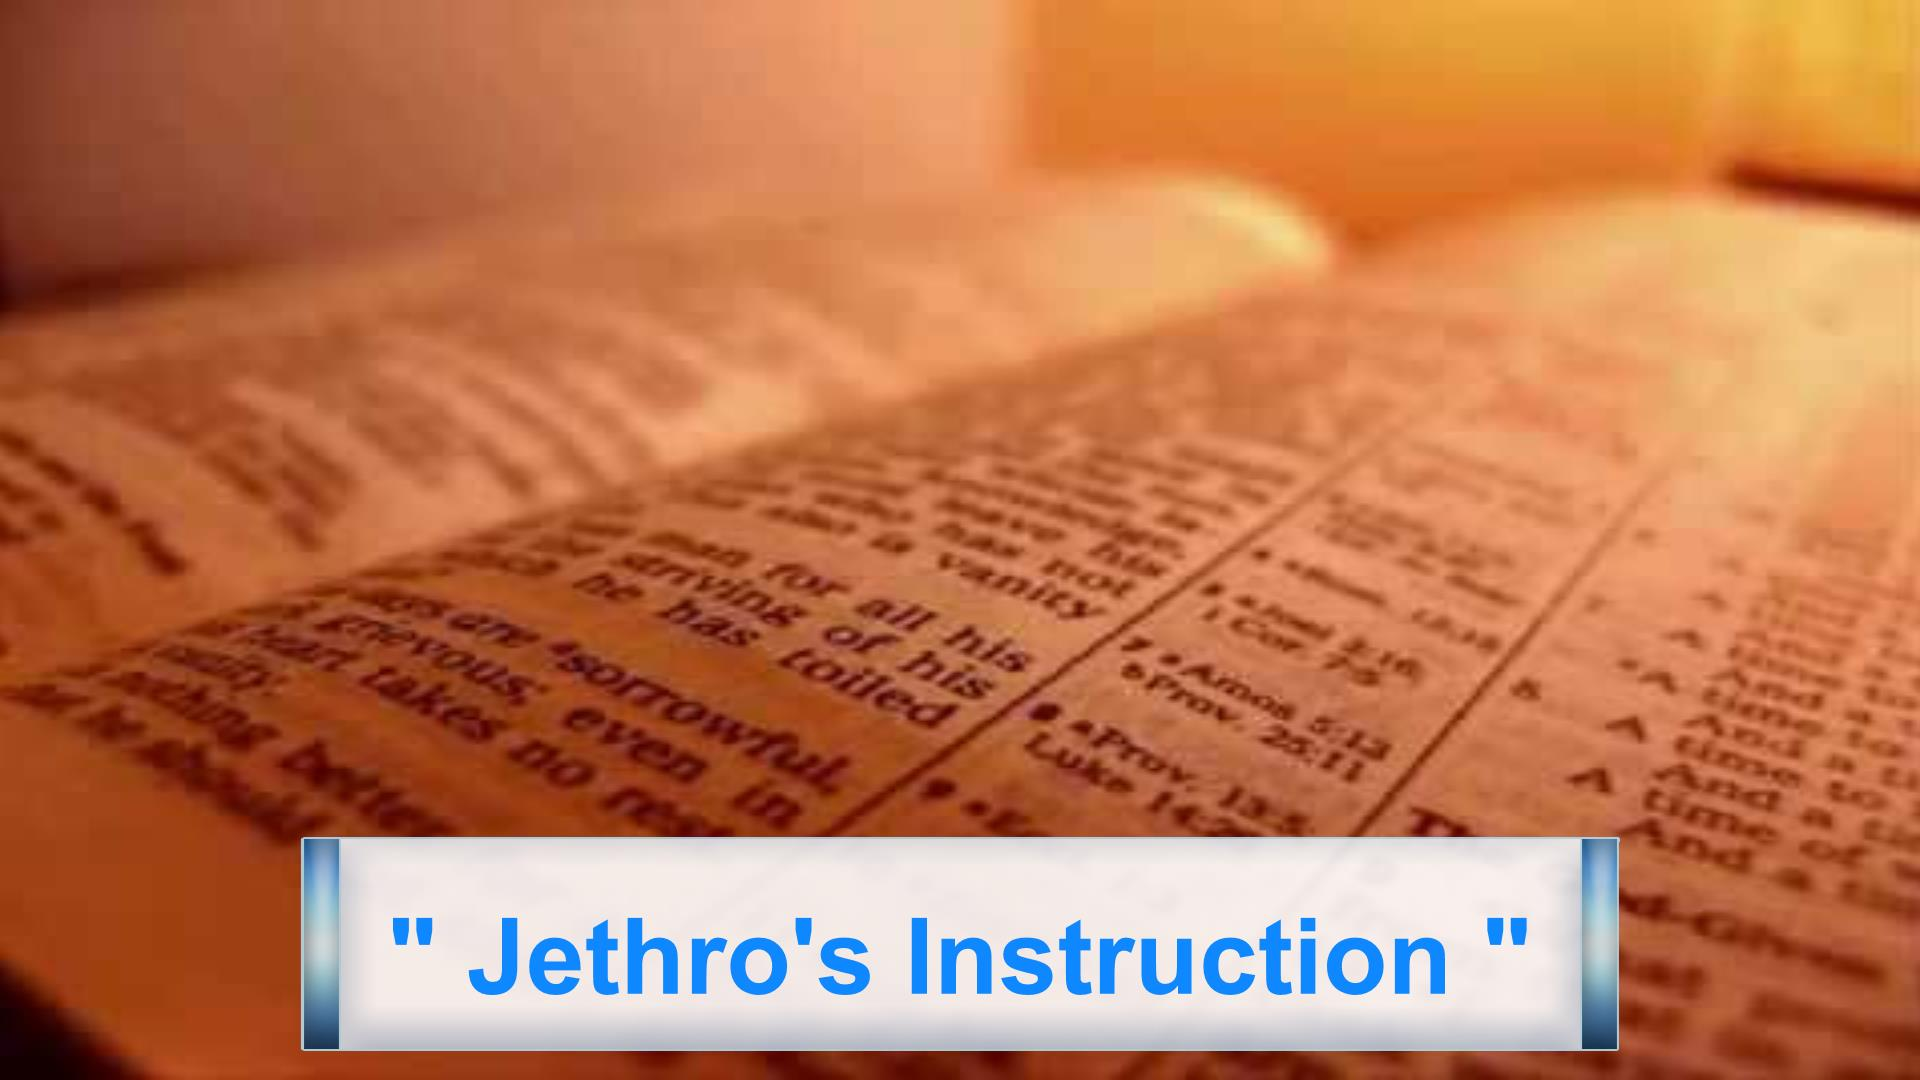 Jethro's Instruction